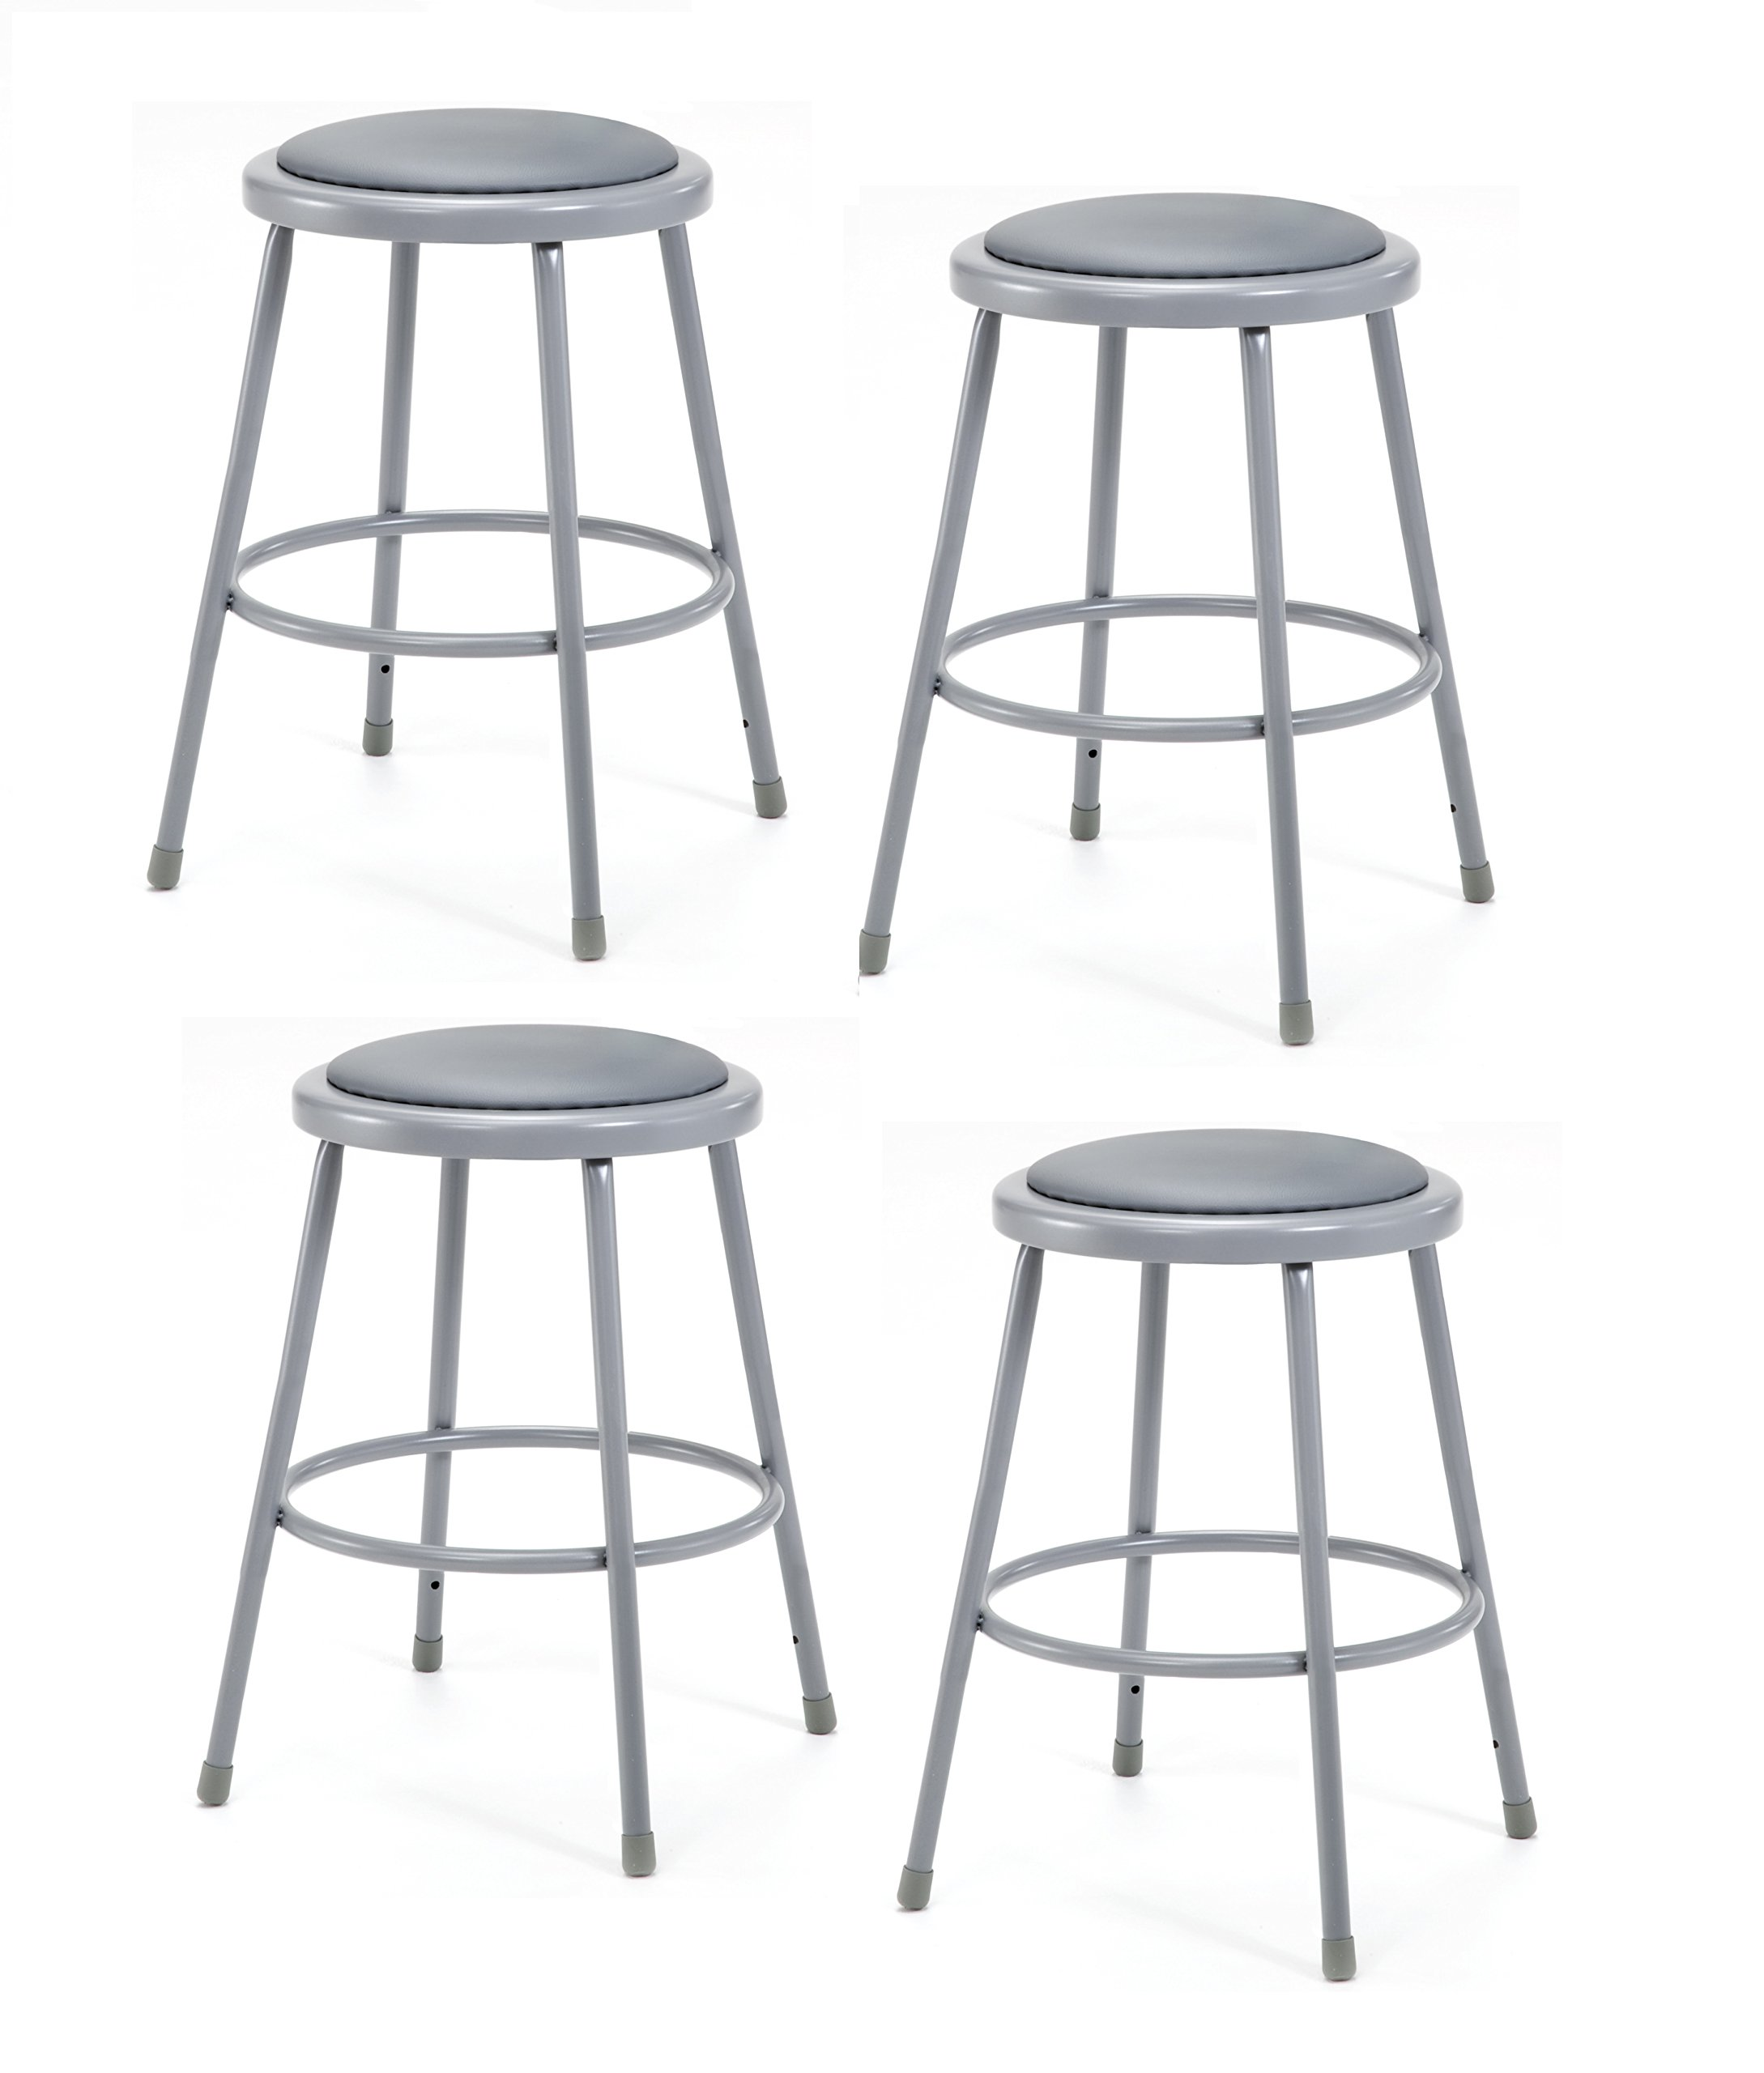 National Public Seating 6424-CN Steel Stool with 24'' Vinyl Upholstered Seat, Grey (Pack of 4) by National Public Seating